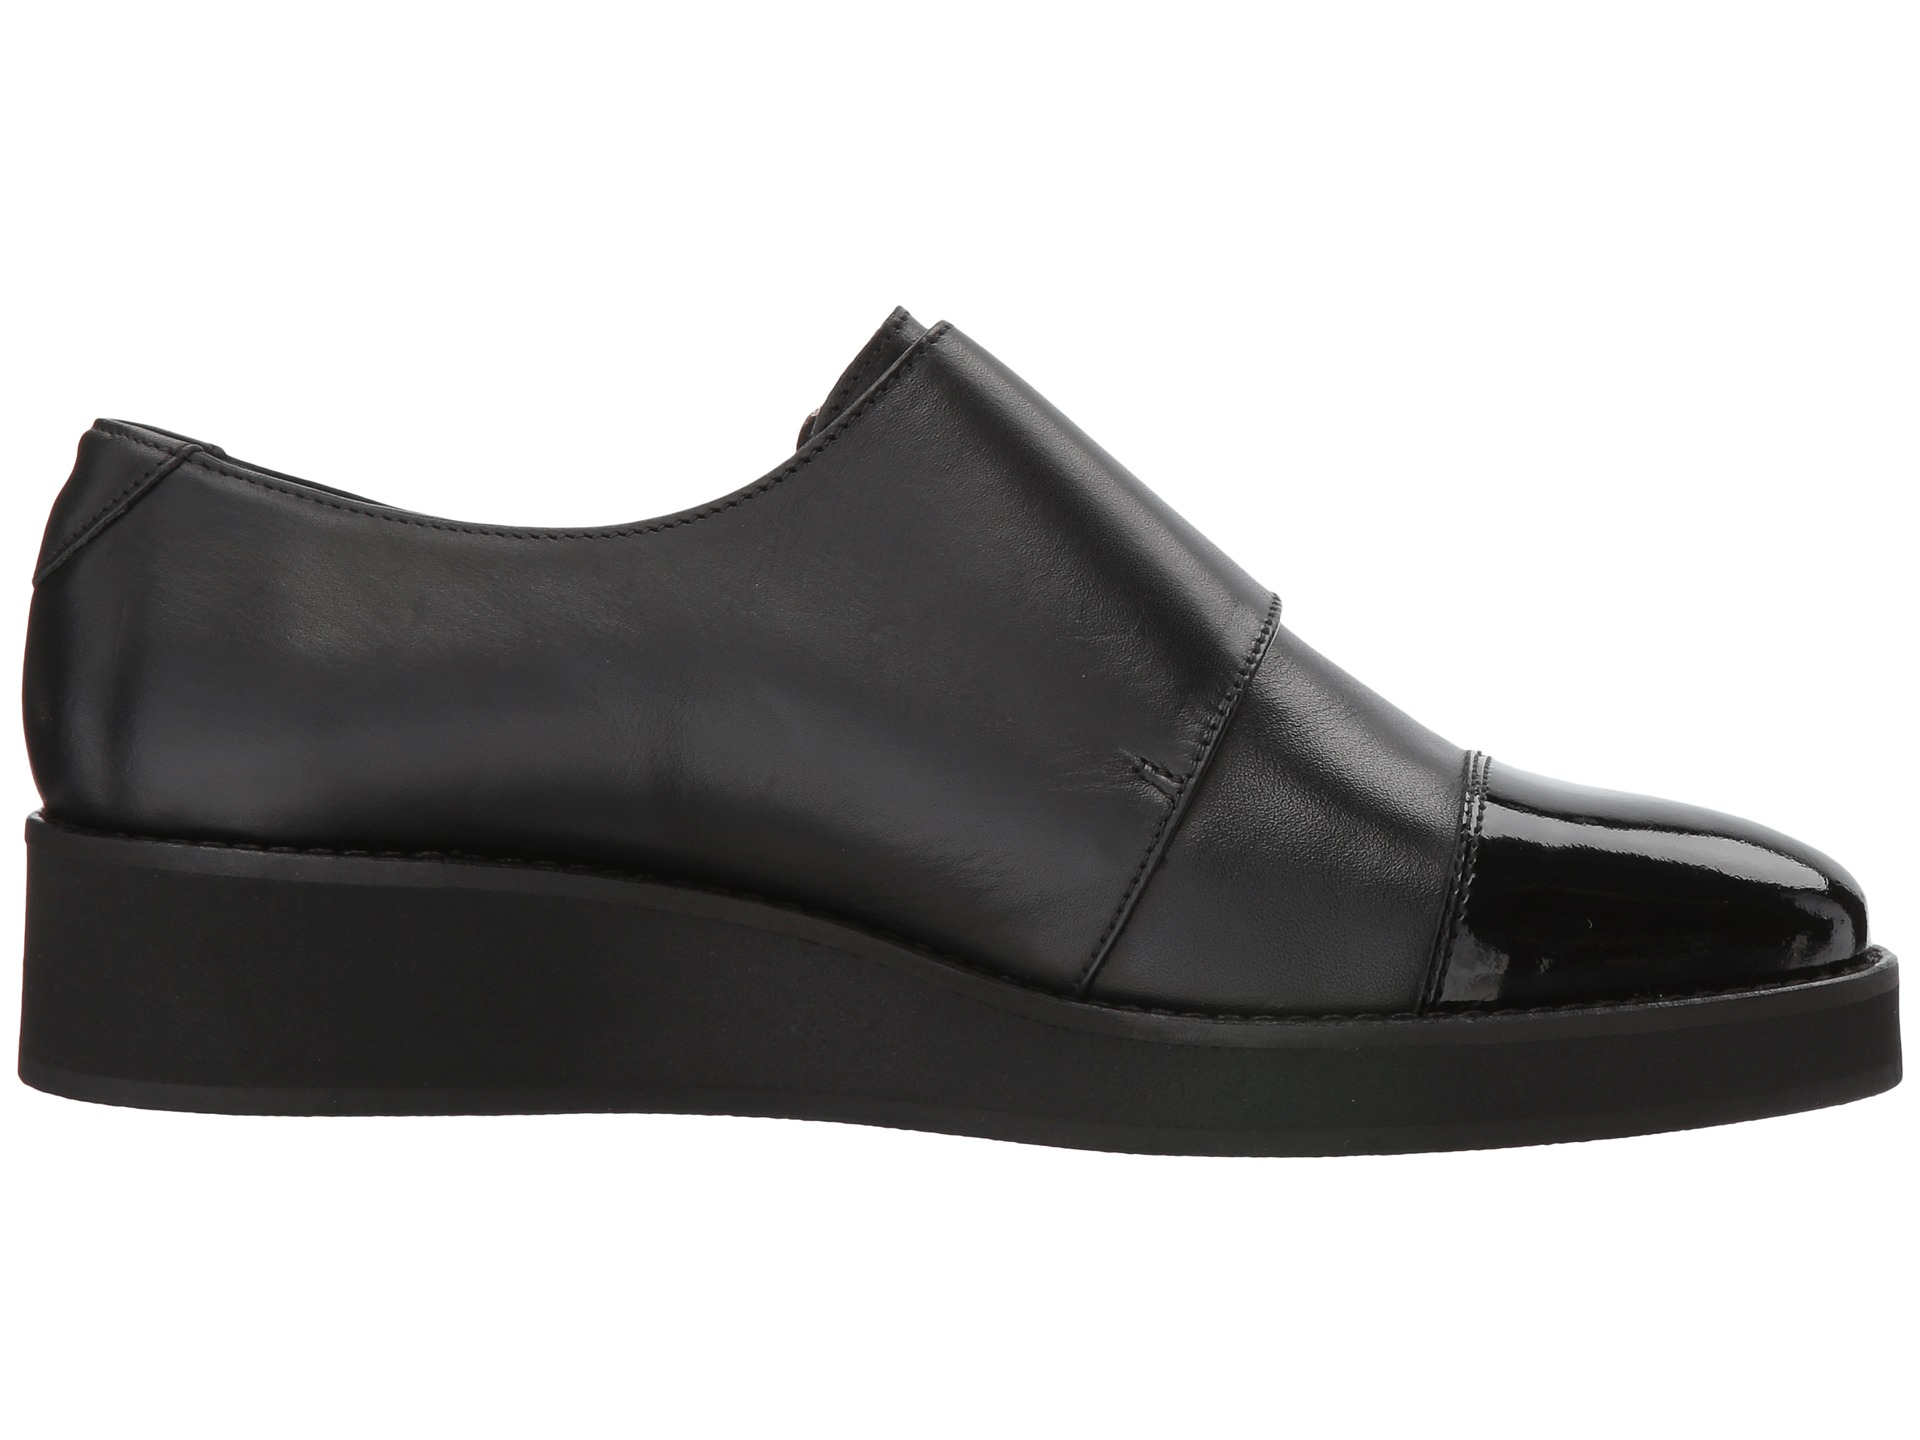 the kooples patent leather shoes at zappos